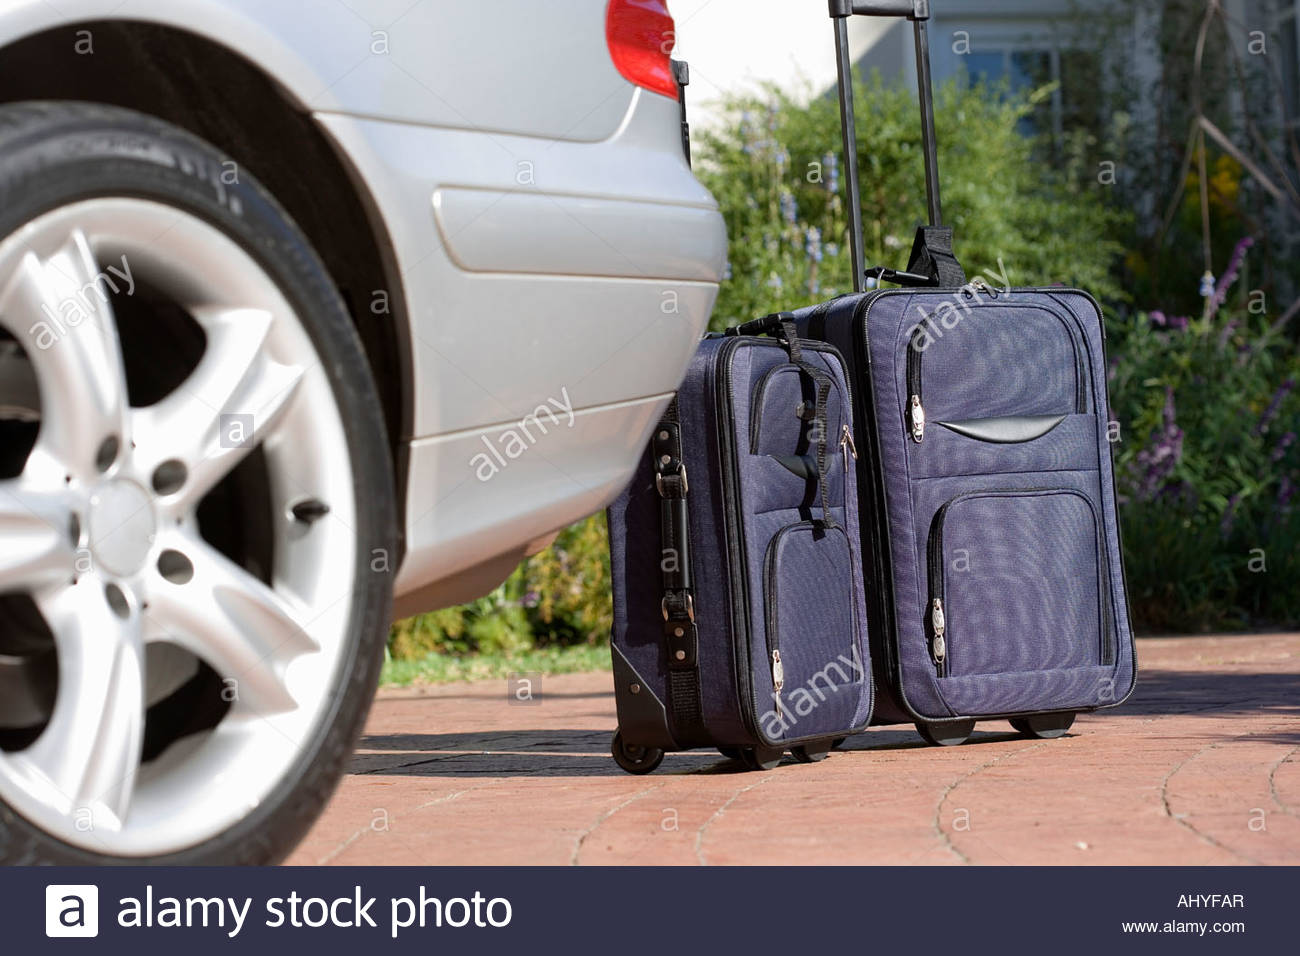 Two suitcases on wheels beside parked car on driveway surface level - Stock Image